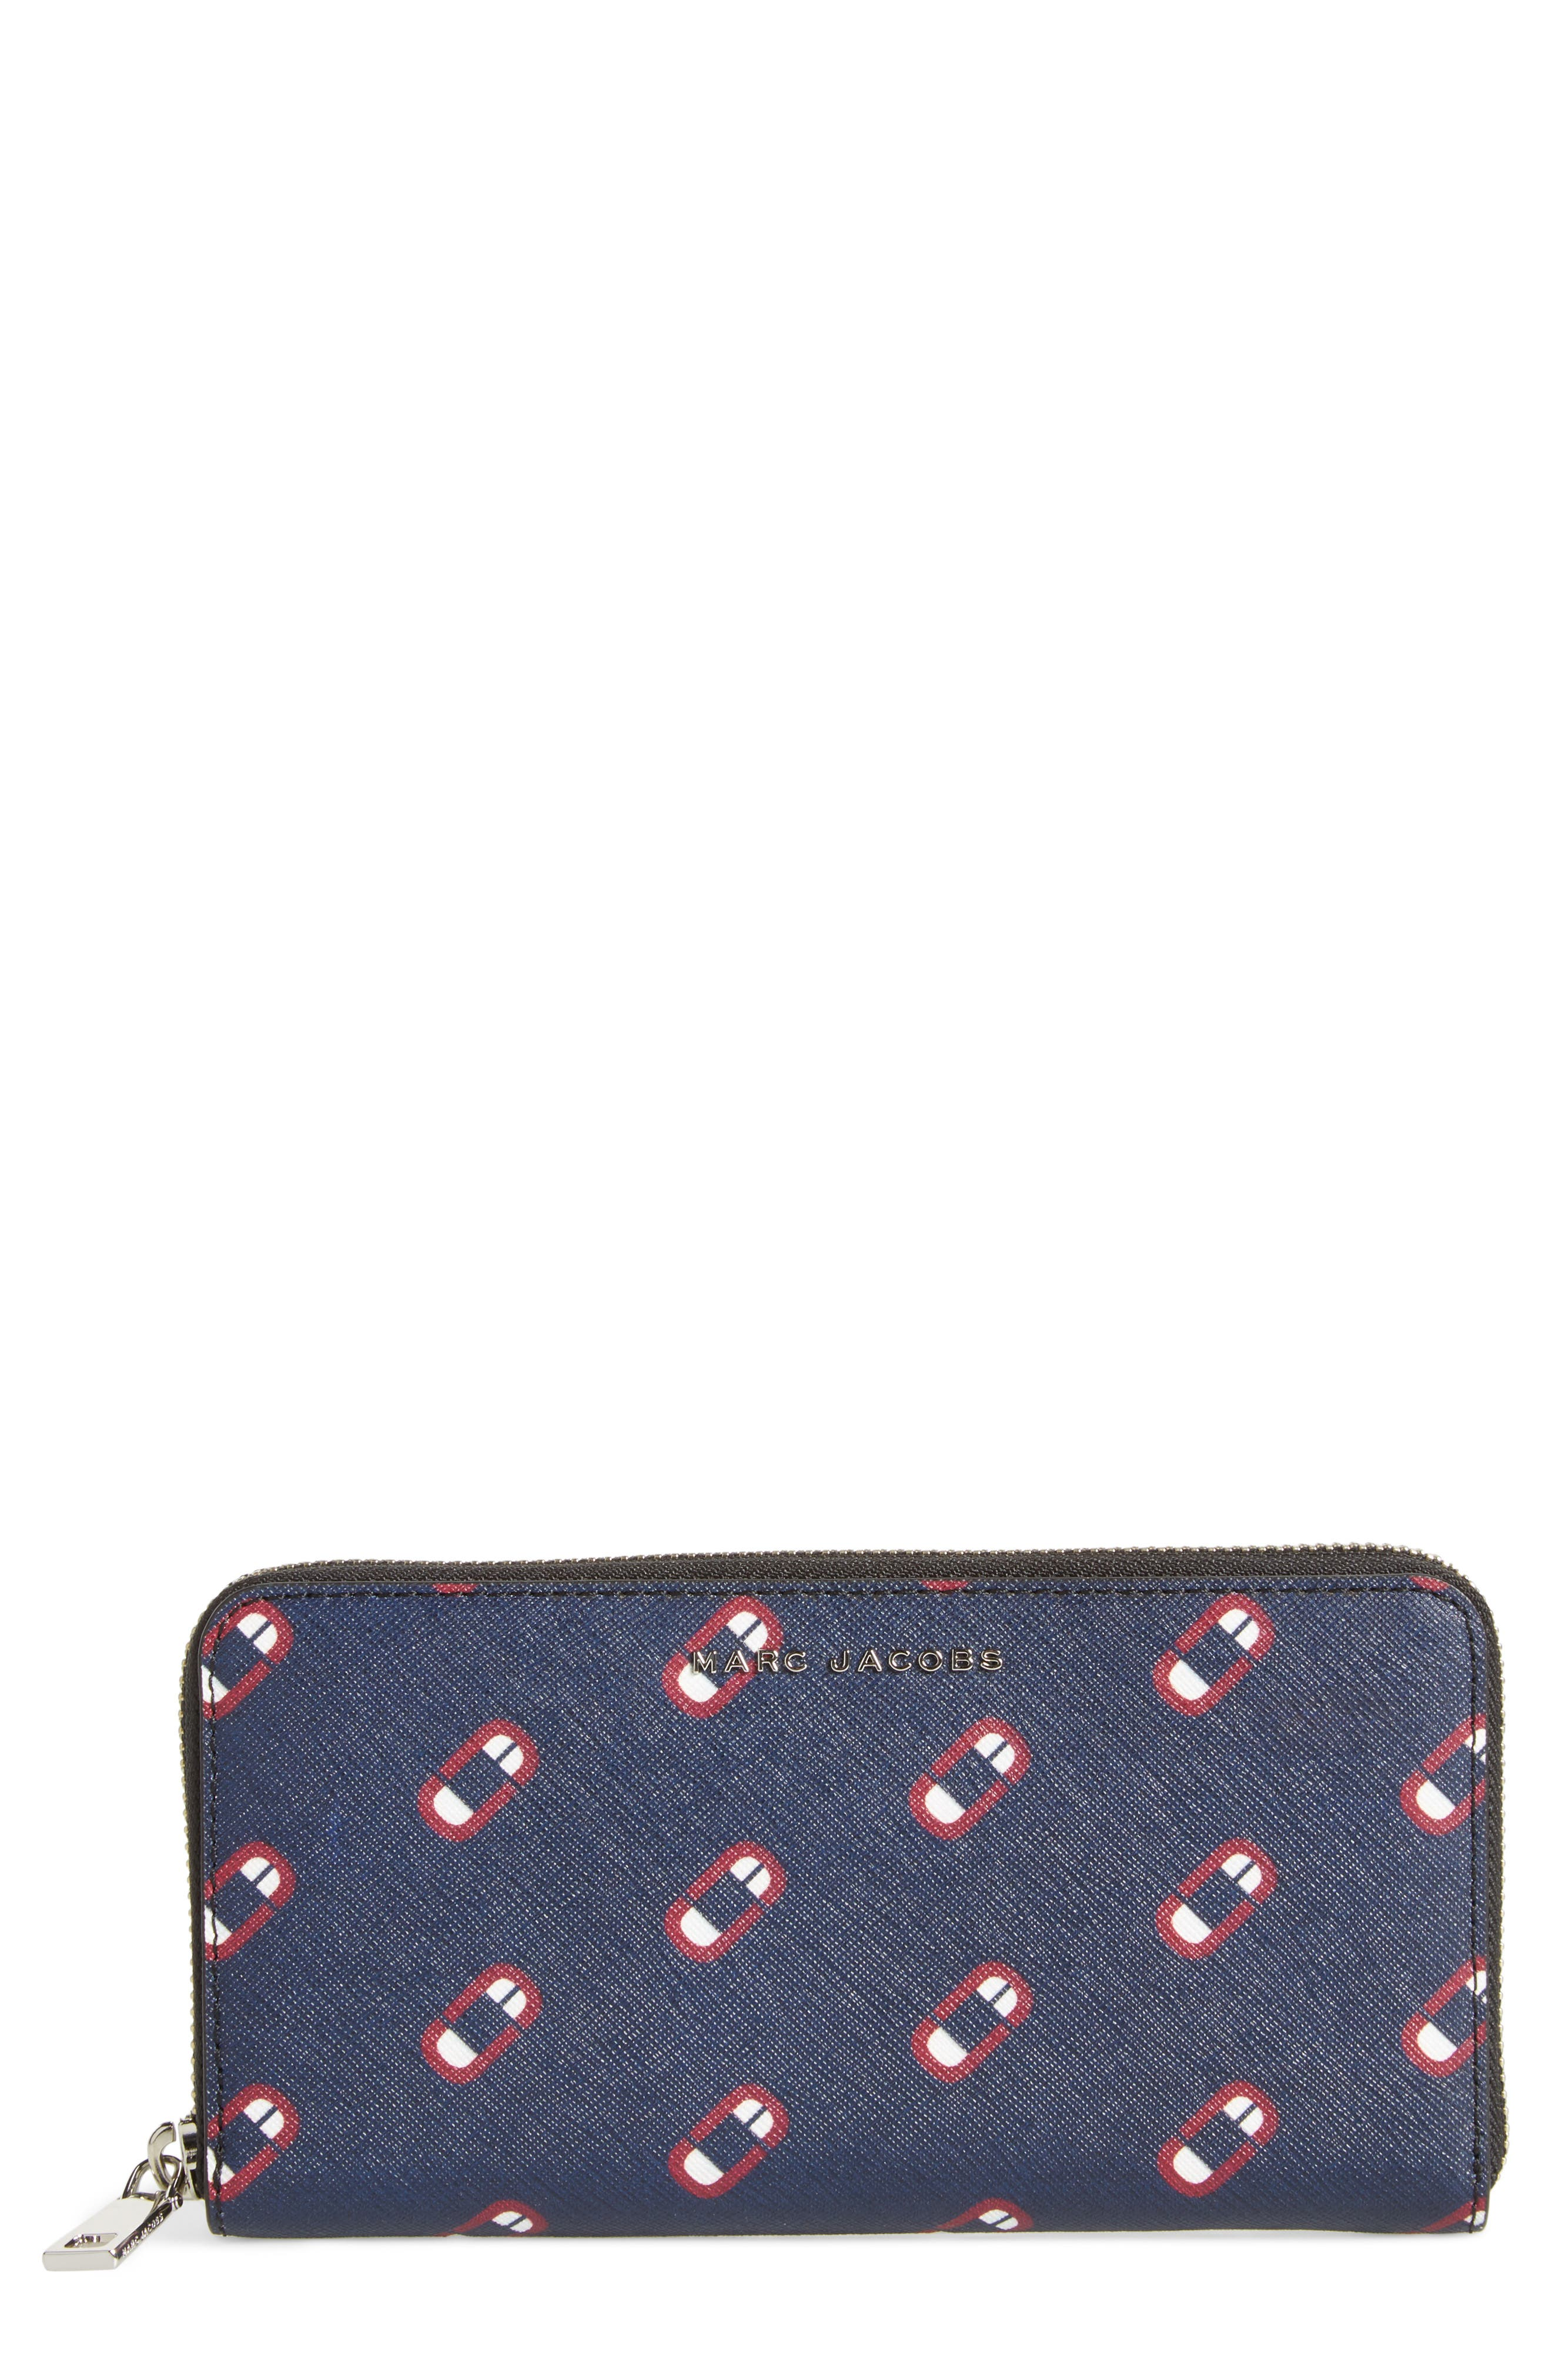 Scream Saffiano Leather Continental Wallet,                         Main,                         color, Navy Multi